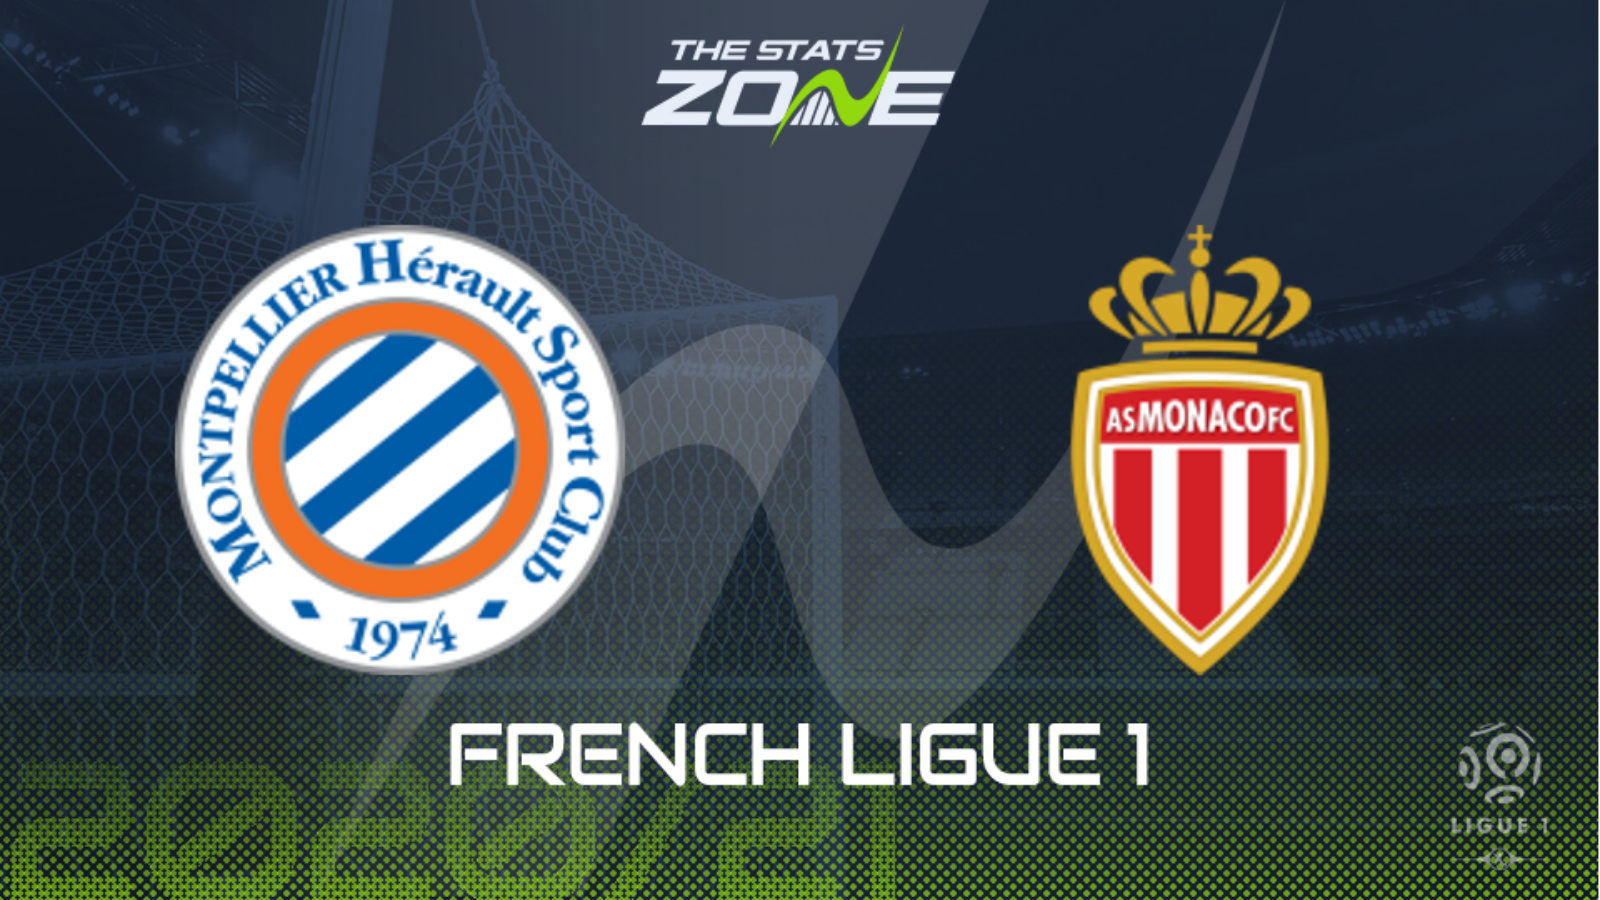 Montpellier vs monaco betting tips bet your heart on me lyrics